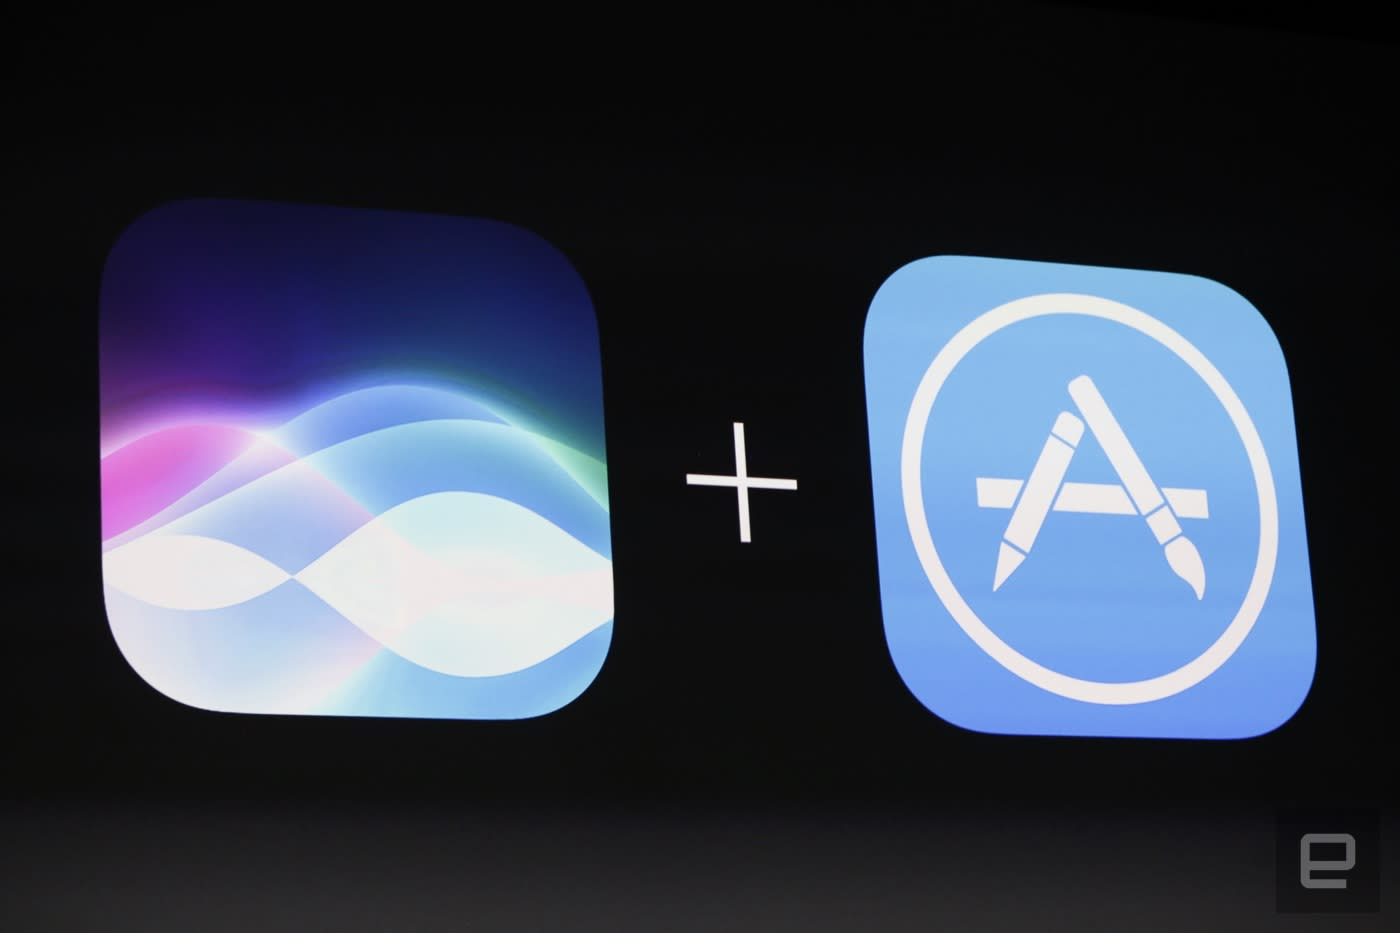 Apple opens Siri up to third-party apps | Engadget